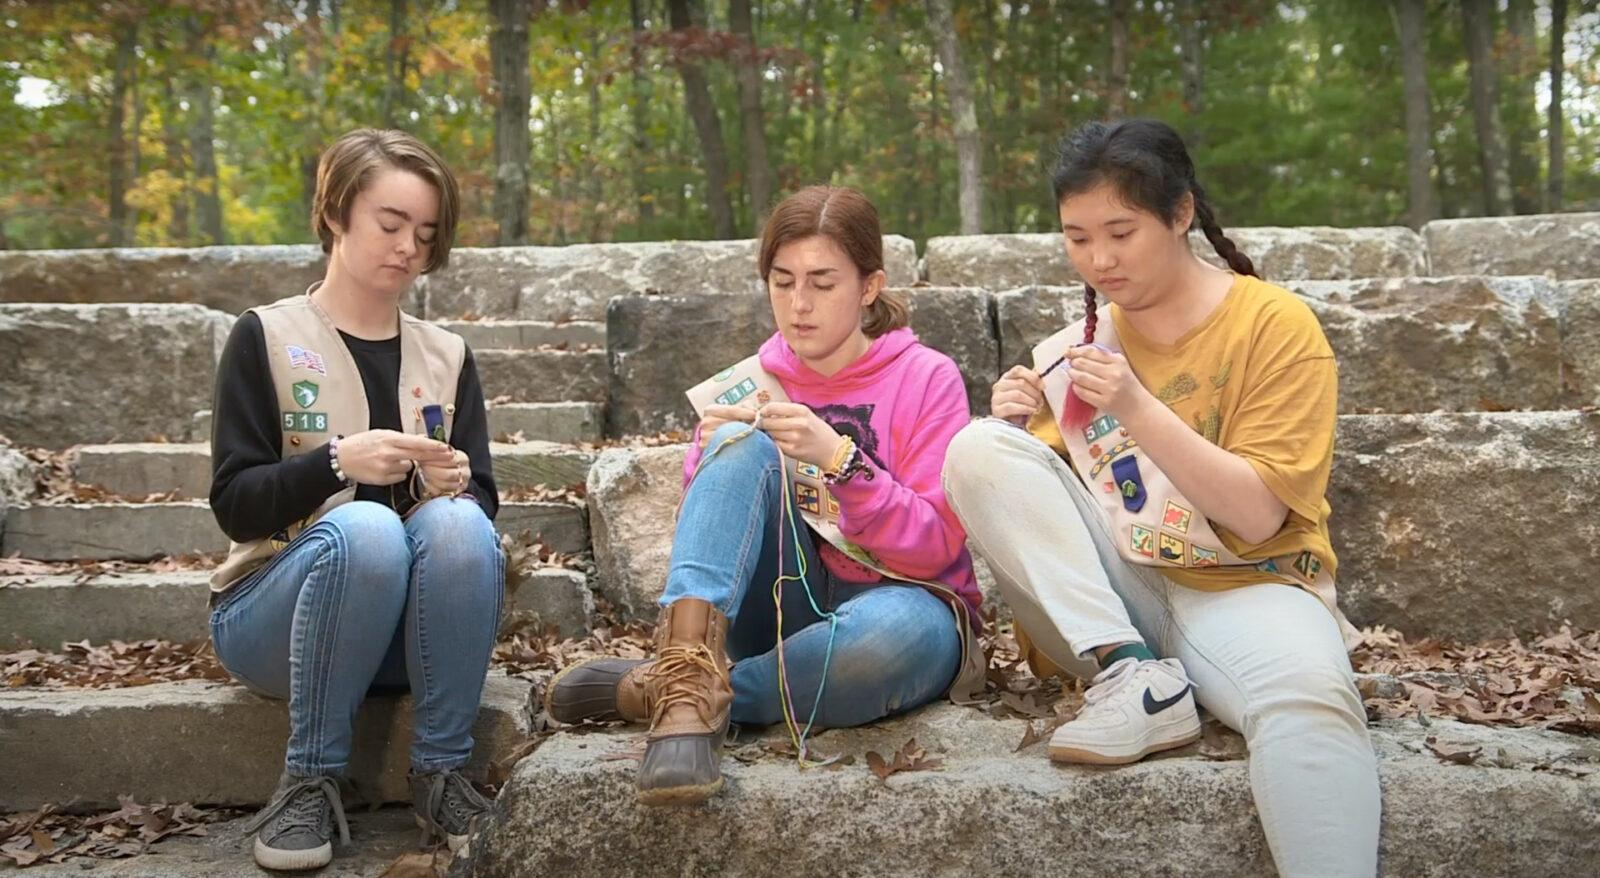 3 girls sitting down next to each other.